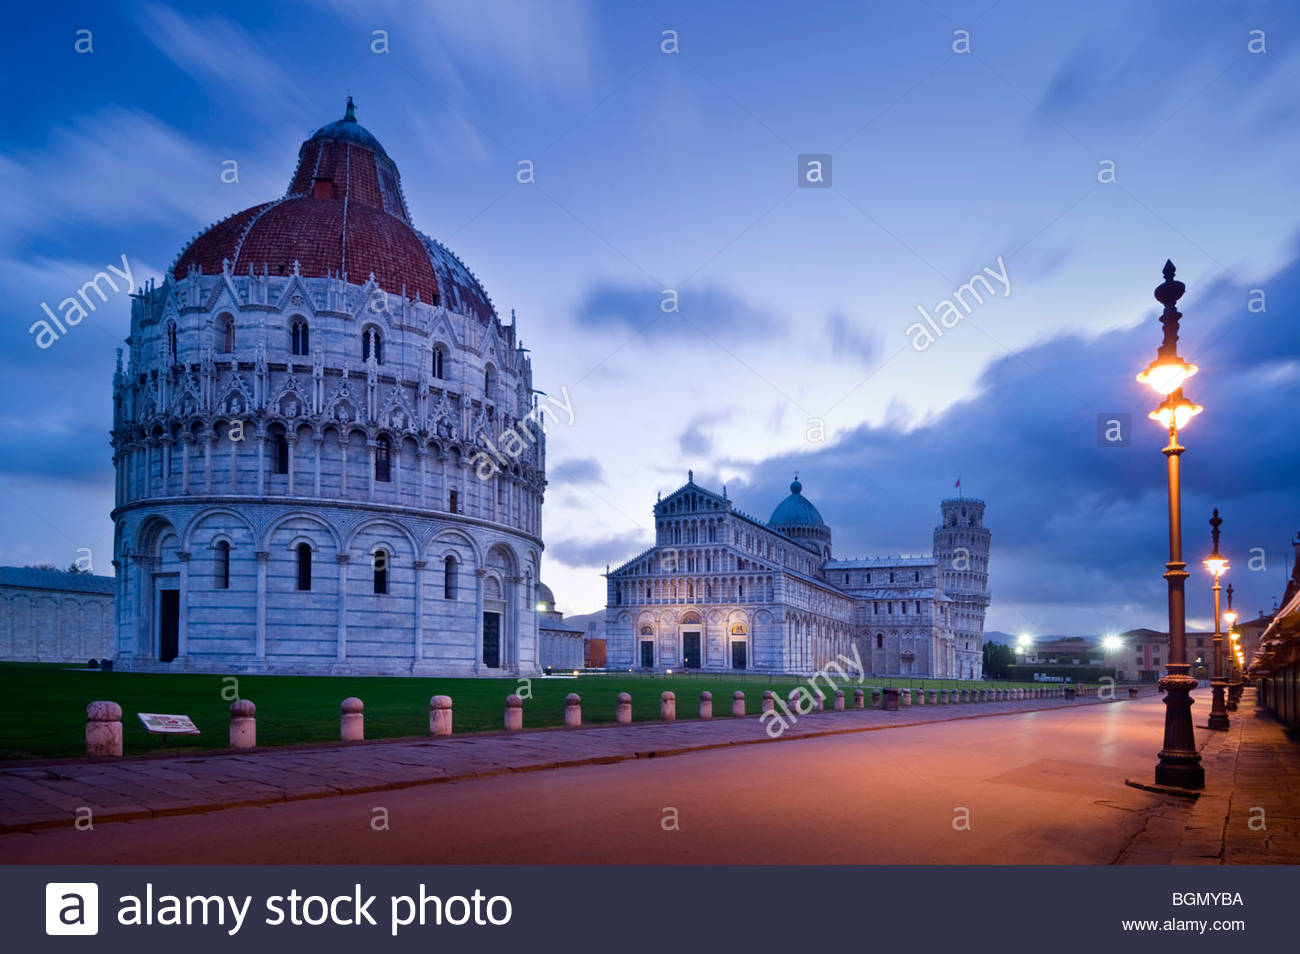 The Baptistery, Duomo and Leaning Tower, Piazza dei Miracoli, Pisa, Italy. - Stock Image